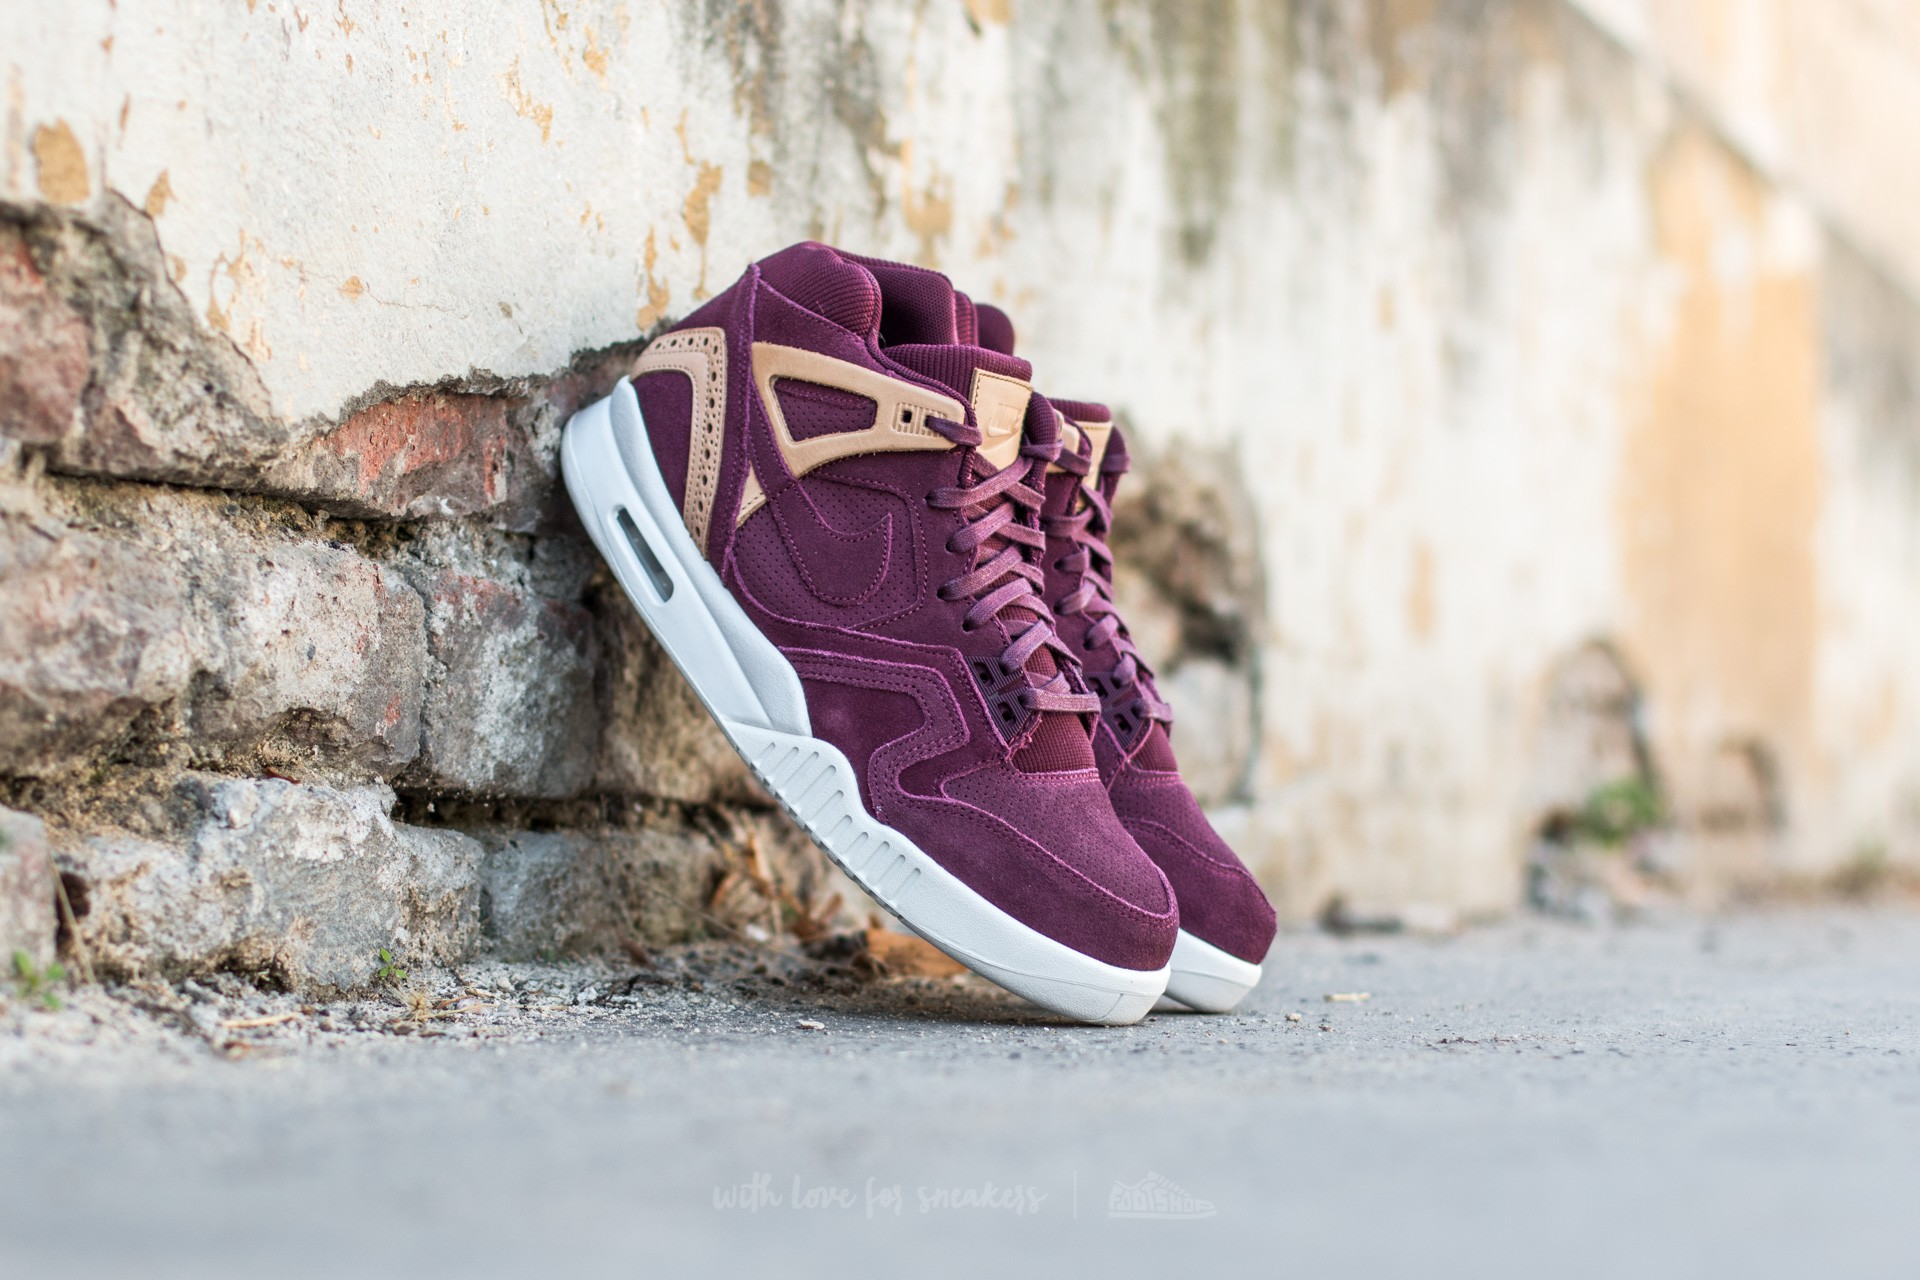 Nike Air Tech Challenge II Night Maroon/ Night Maroon-Vachetta Tan